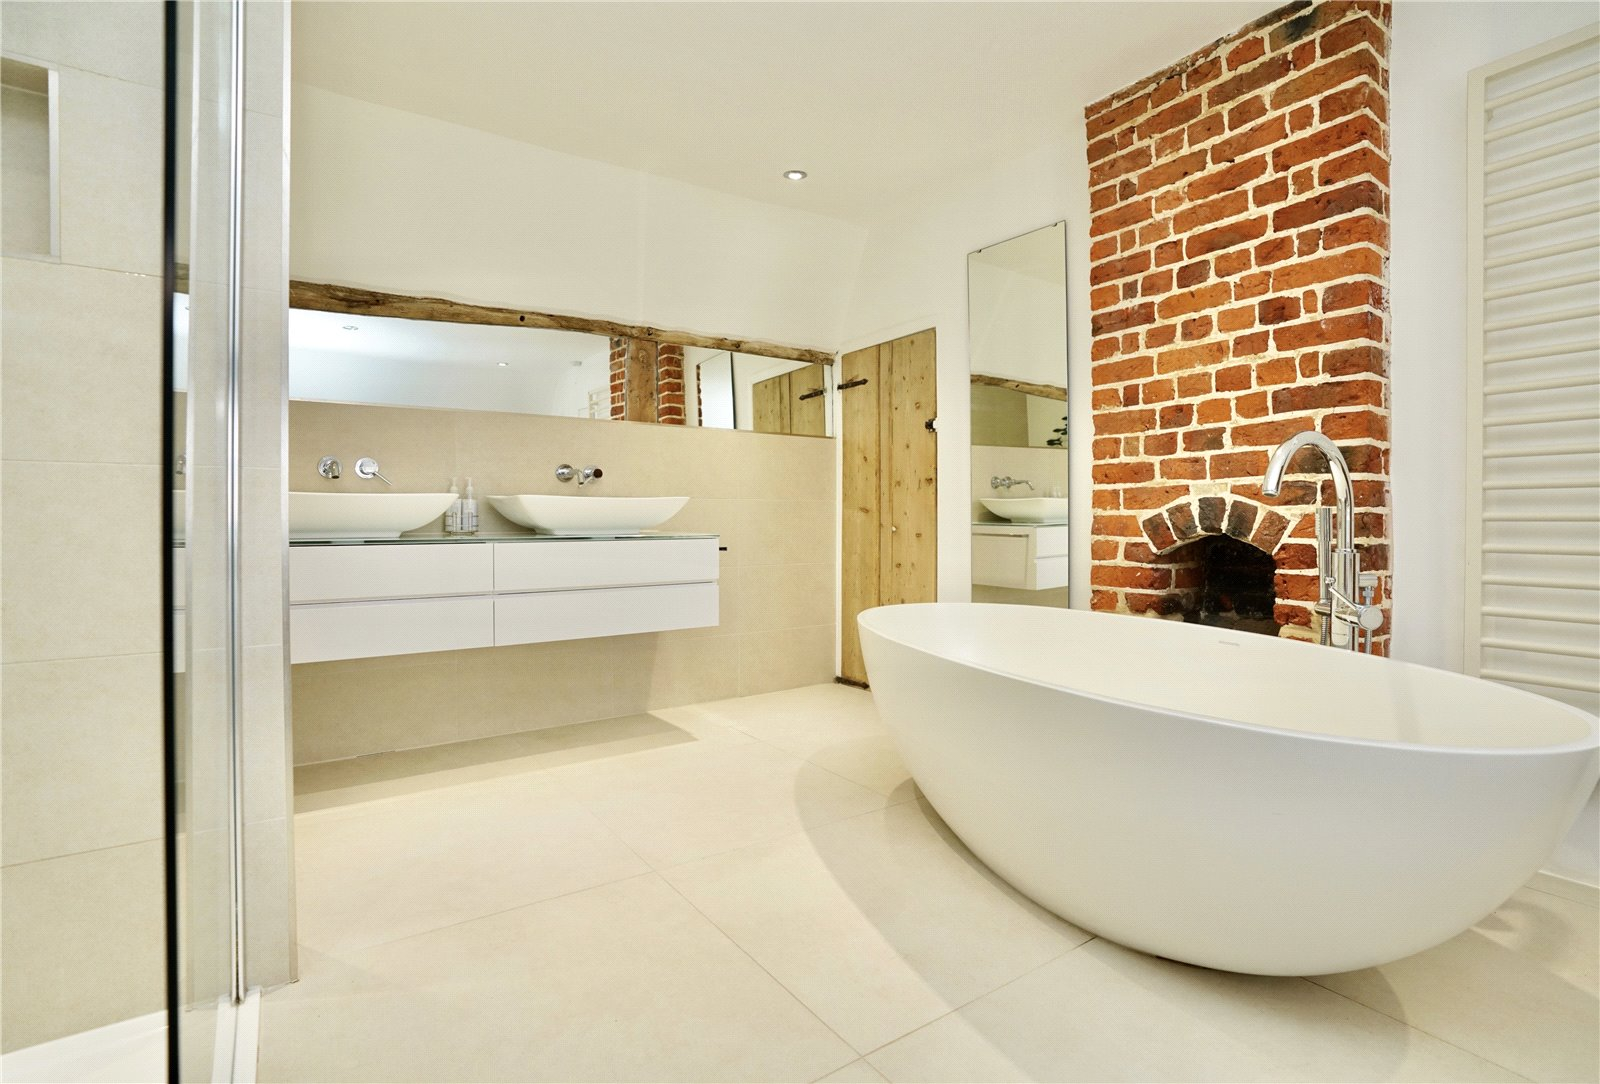 3 bed house for sale in Fox Street, Great Gransden  - Property Image 11